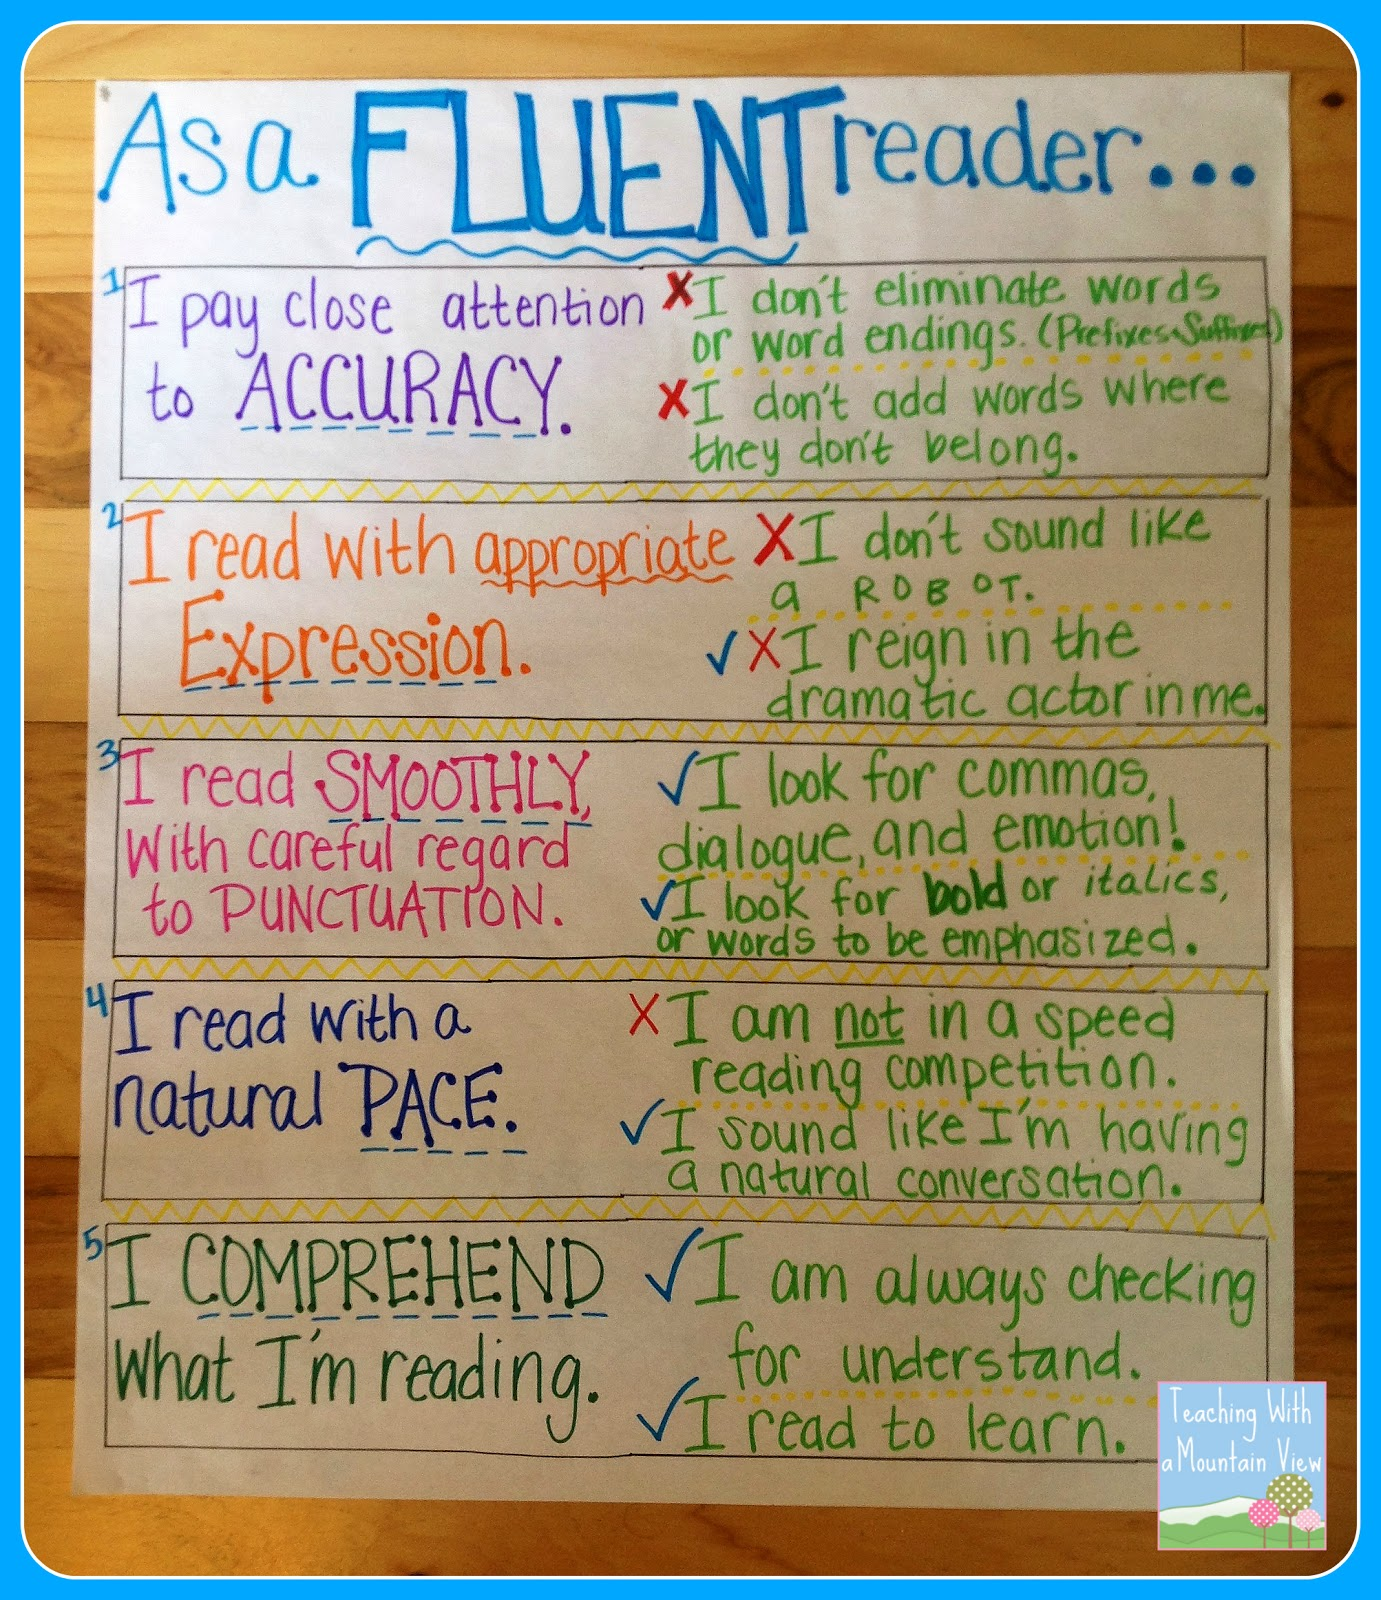 Worksheet Strategies To Improve Reading Comprehension For Elementary Students teaching with a mountain view top 10 tips for building fluent counter argument some teachers mention that the students need to hear examples of reading and yes i agree i